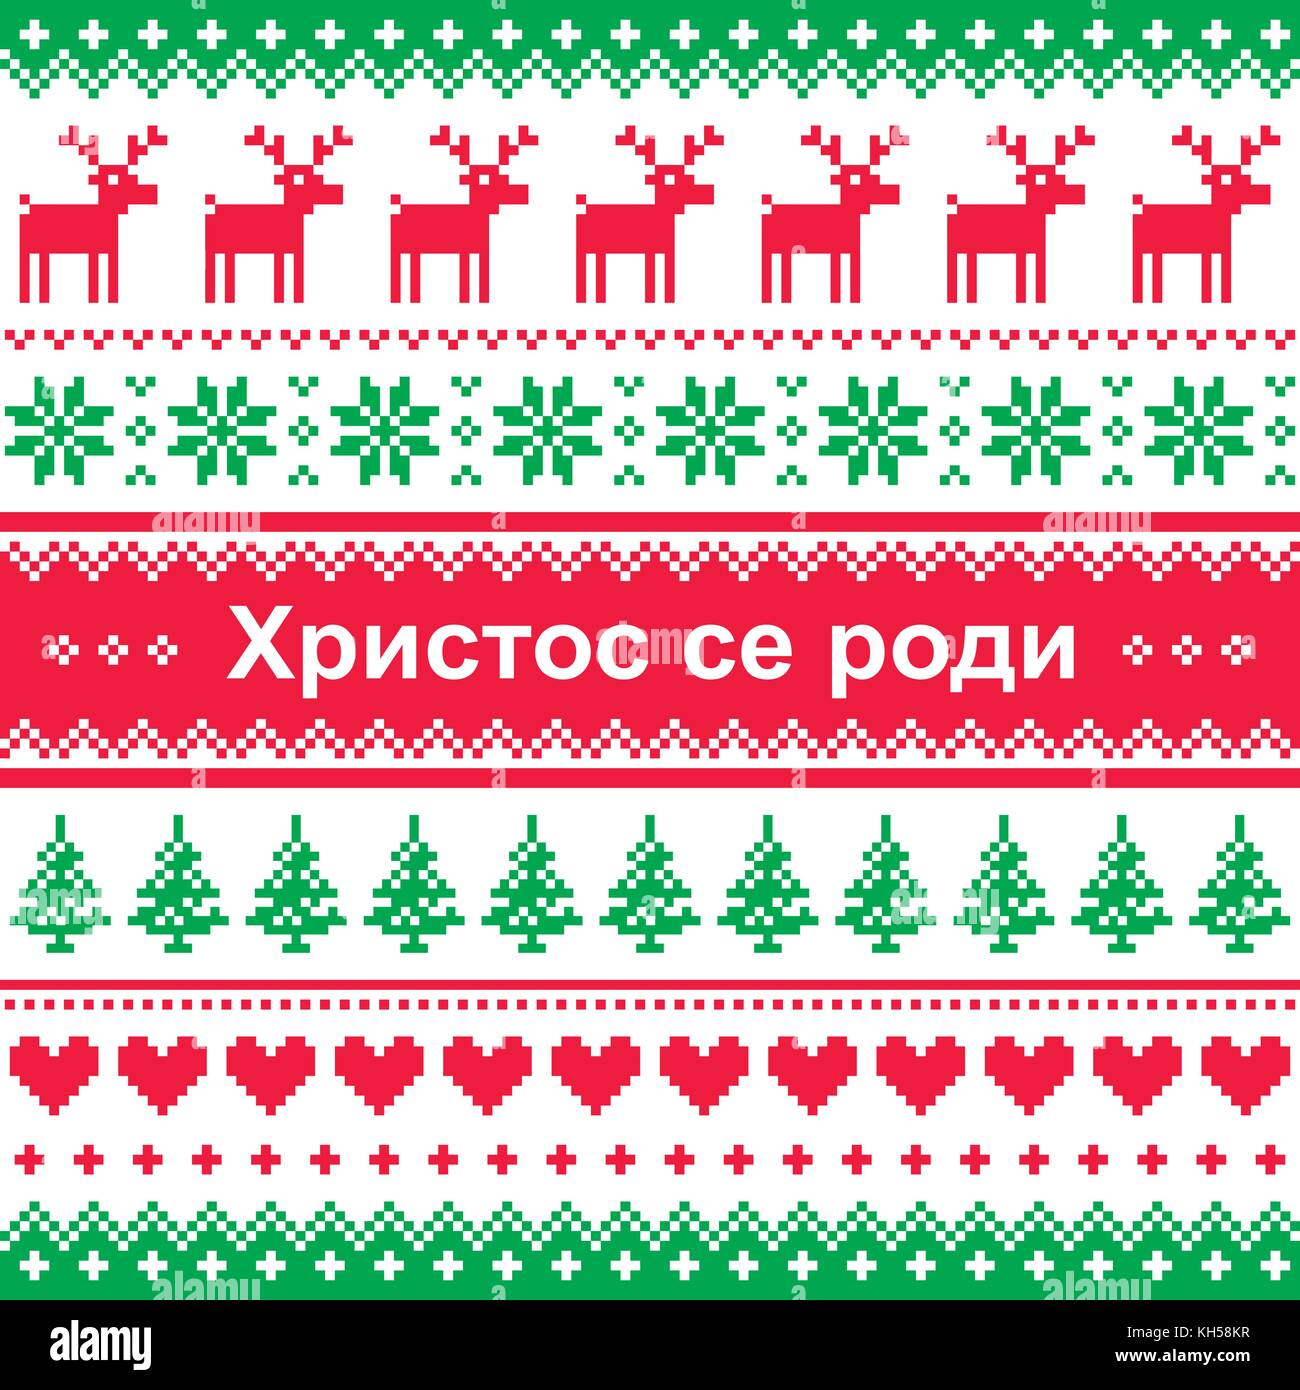 Merry Christmas in Serbian and Montenegrin vector greeting card, seamless pattern - Христос се роди (Hristos se Stock Vector